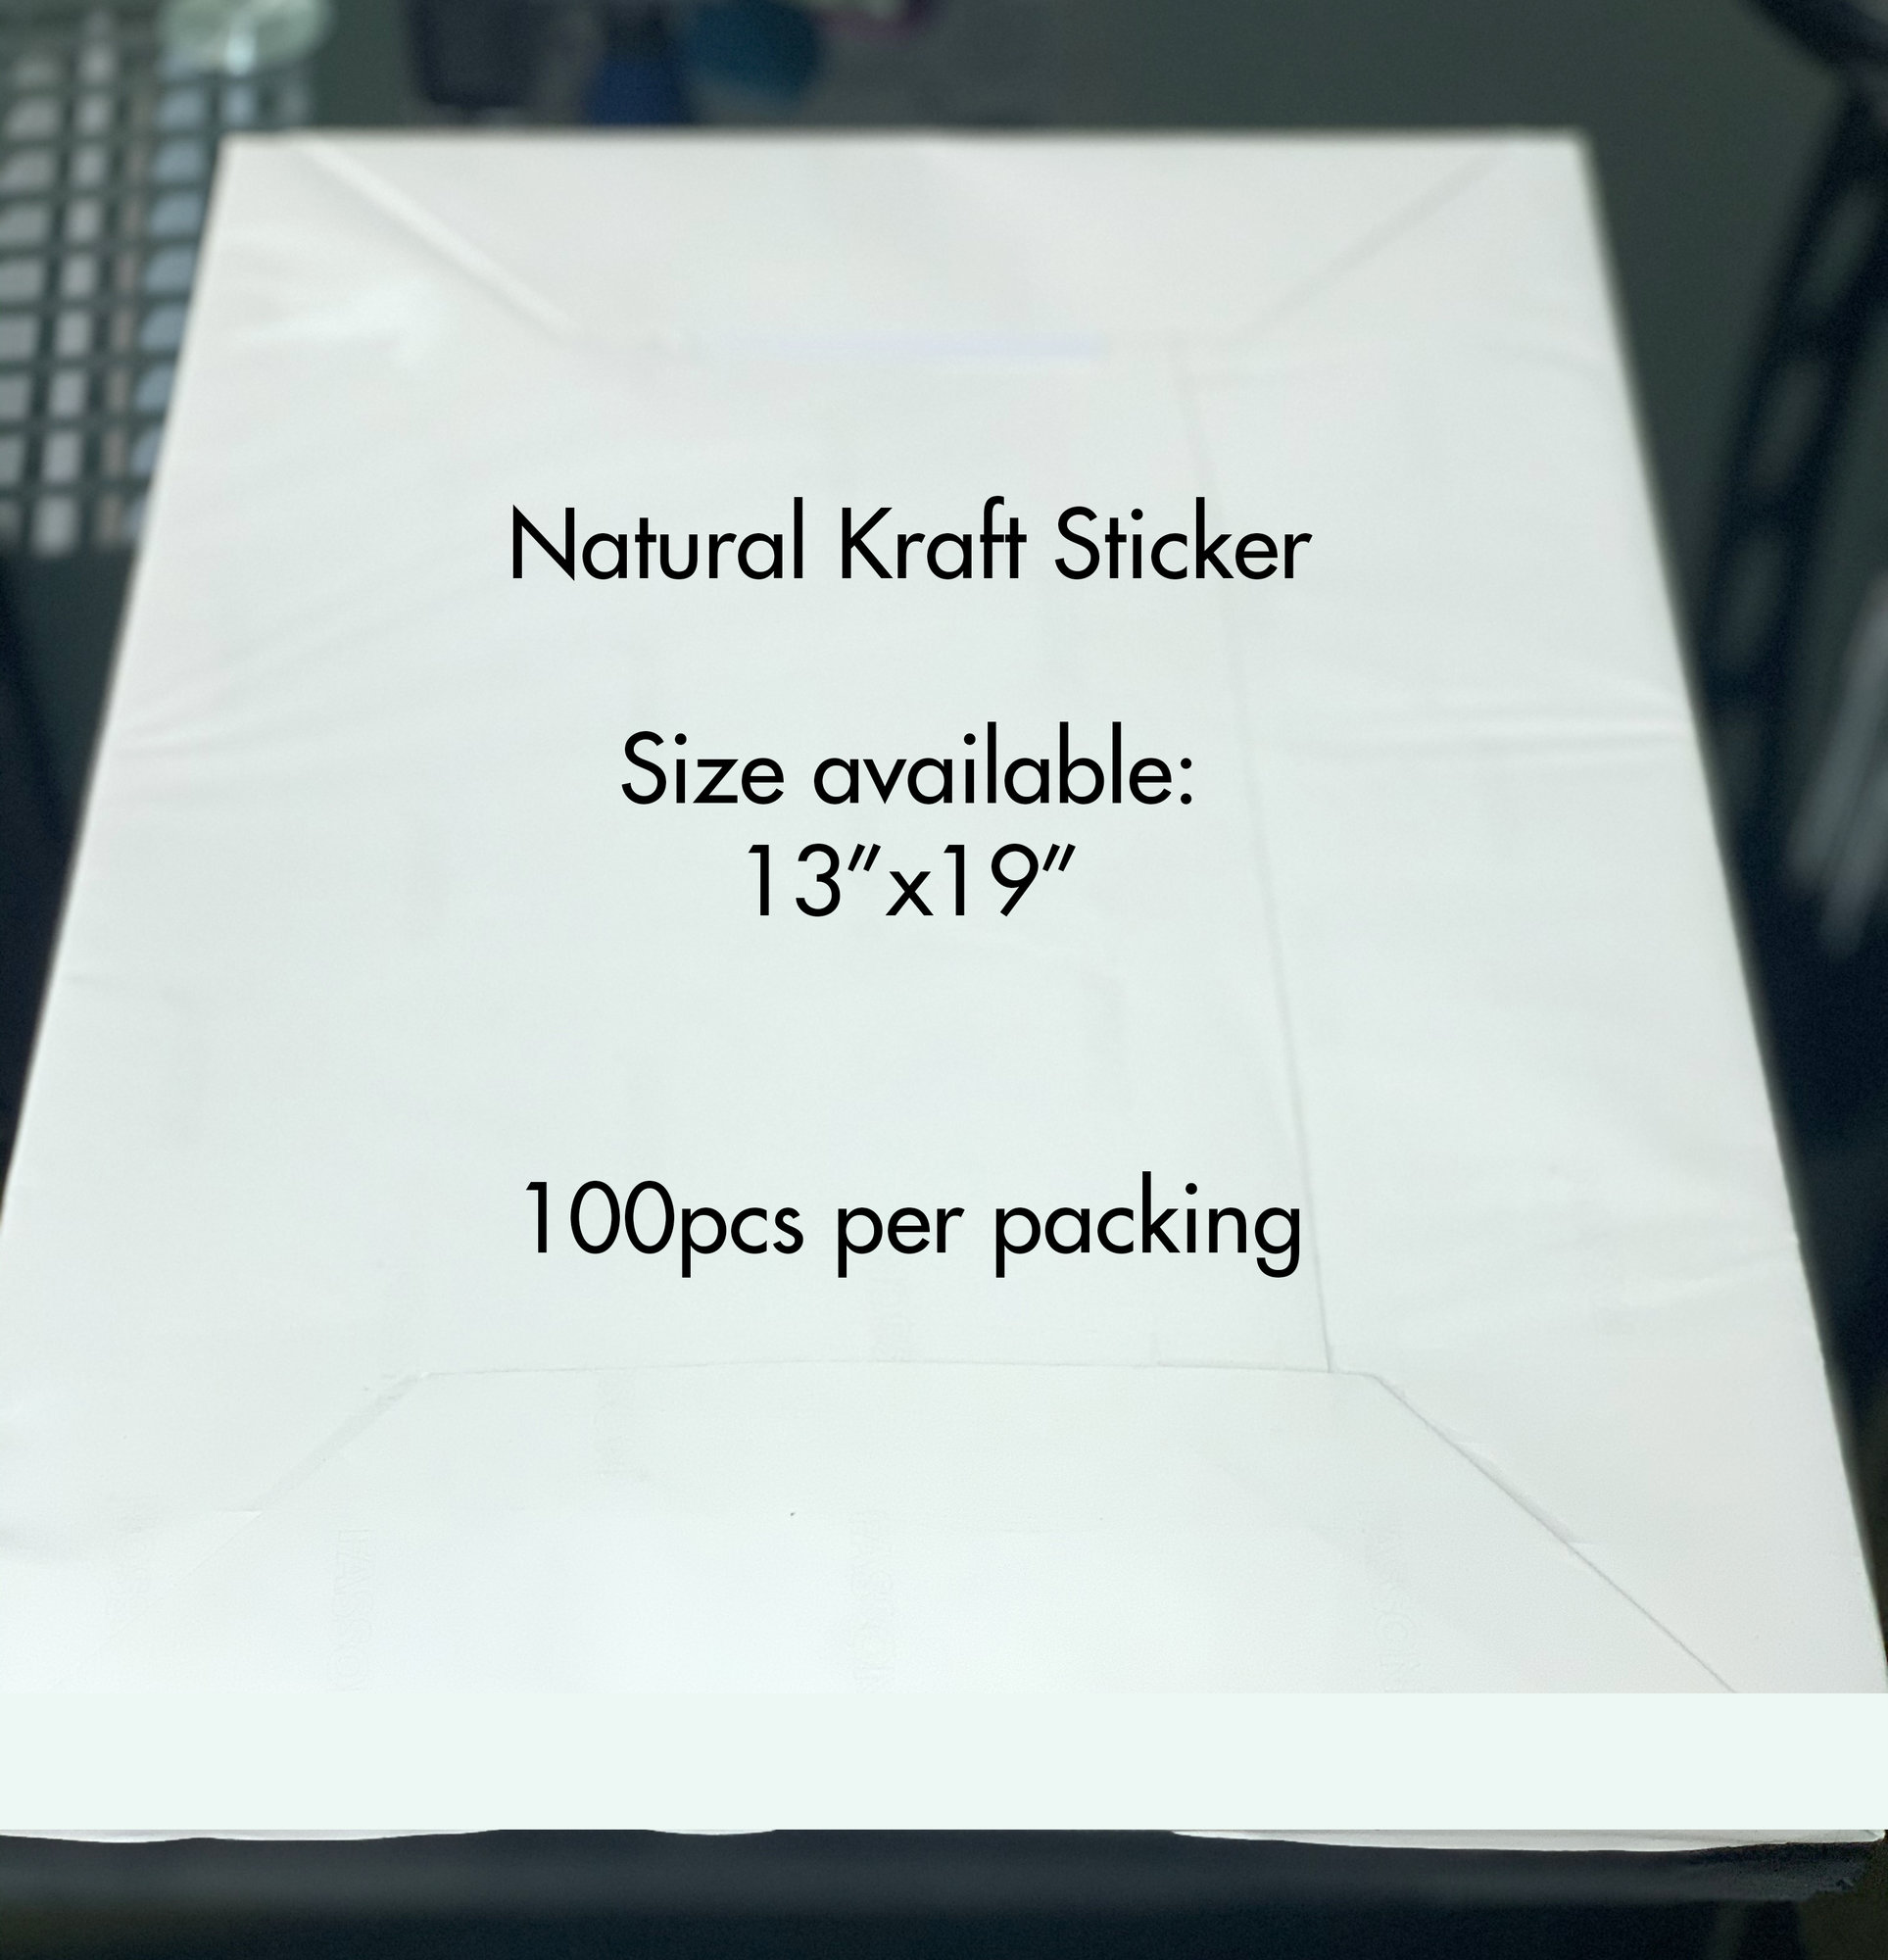 Natural Kraft Sticker